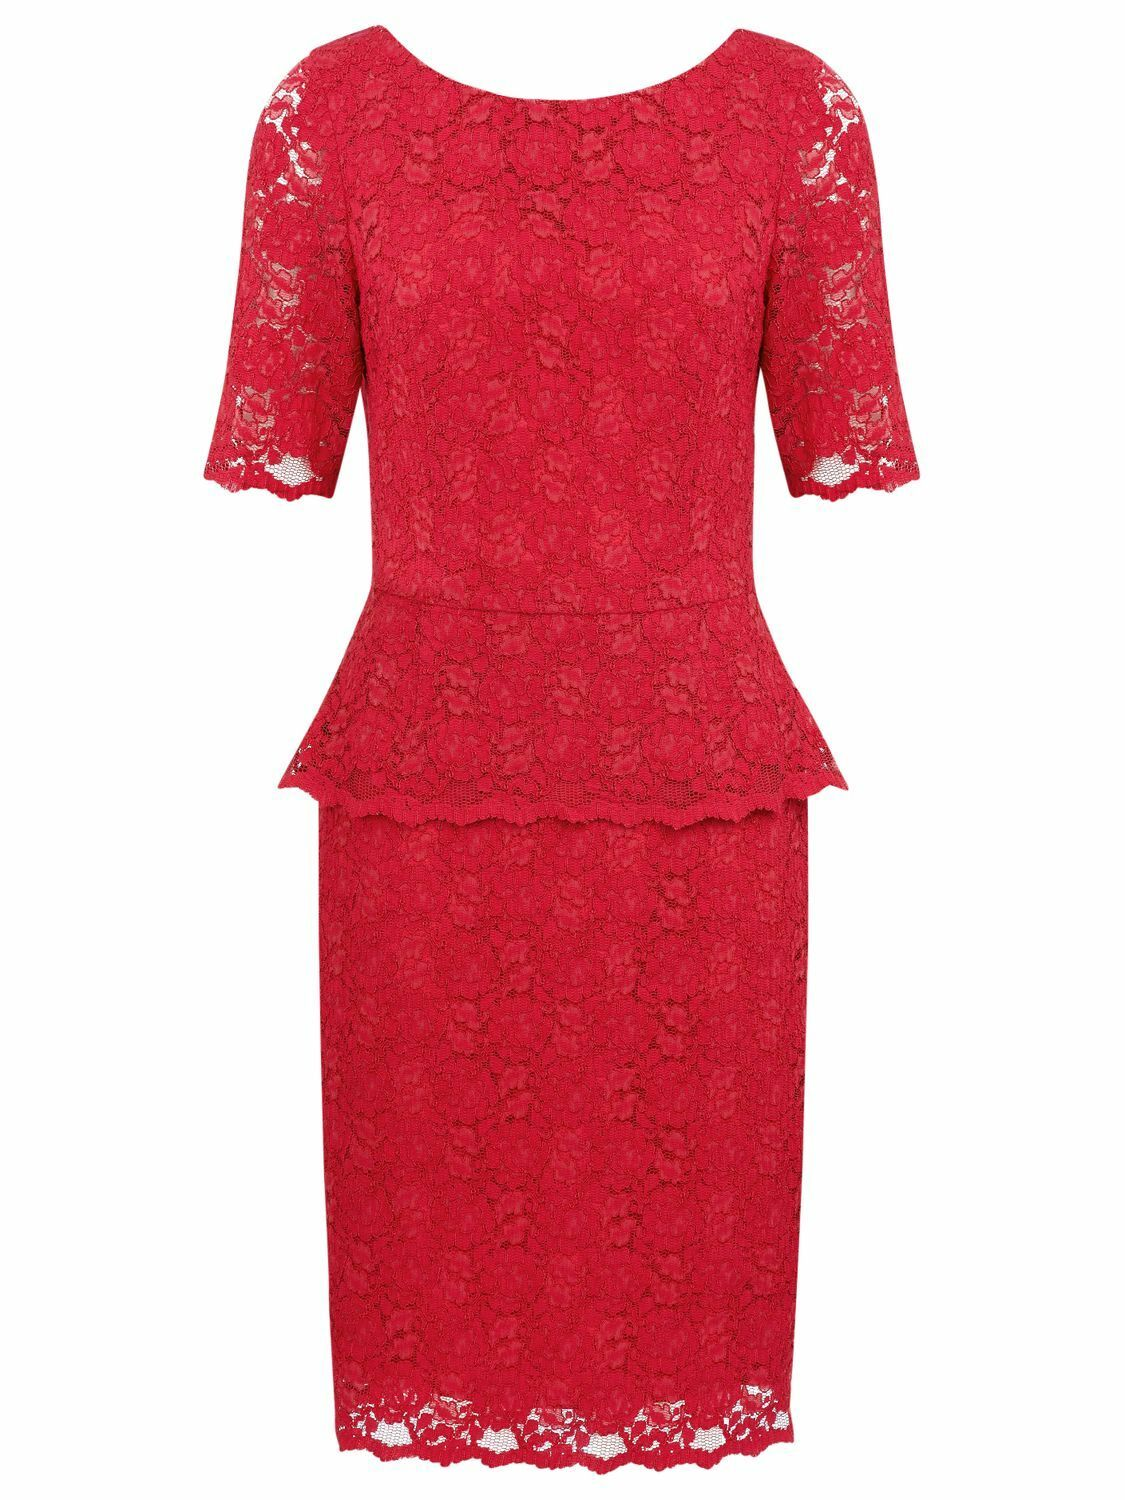 Kaliko, pink red lace  peplum dress size 14, BNWNT.